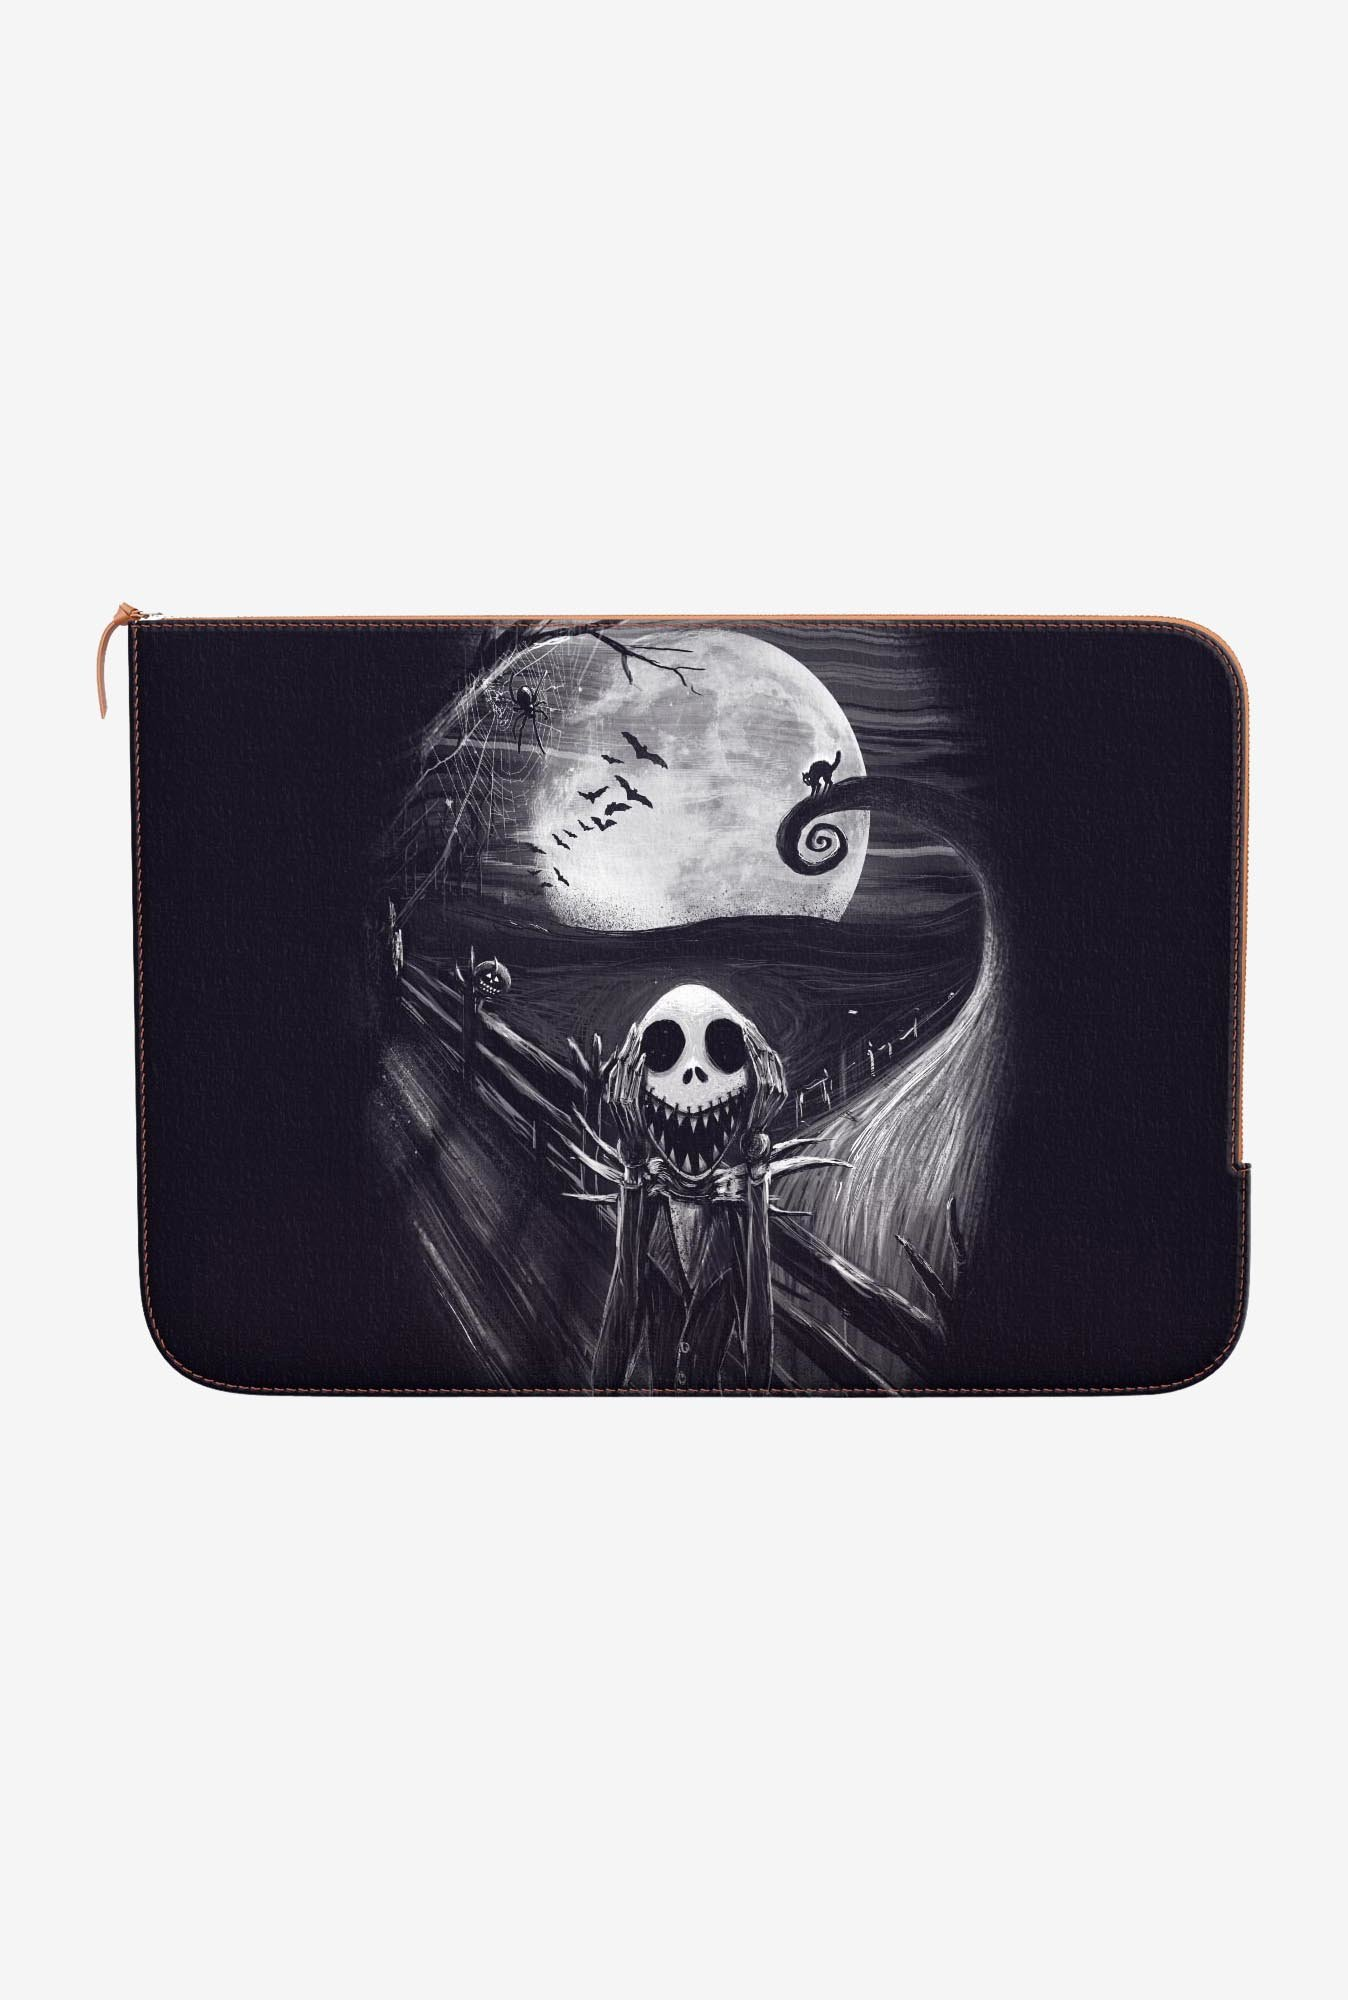 DailyObjects Scream Before MacBook Pro 15 Zippered Sleeve